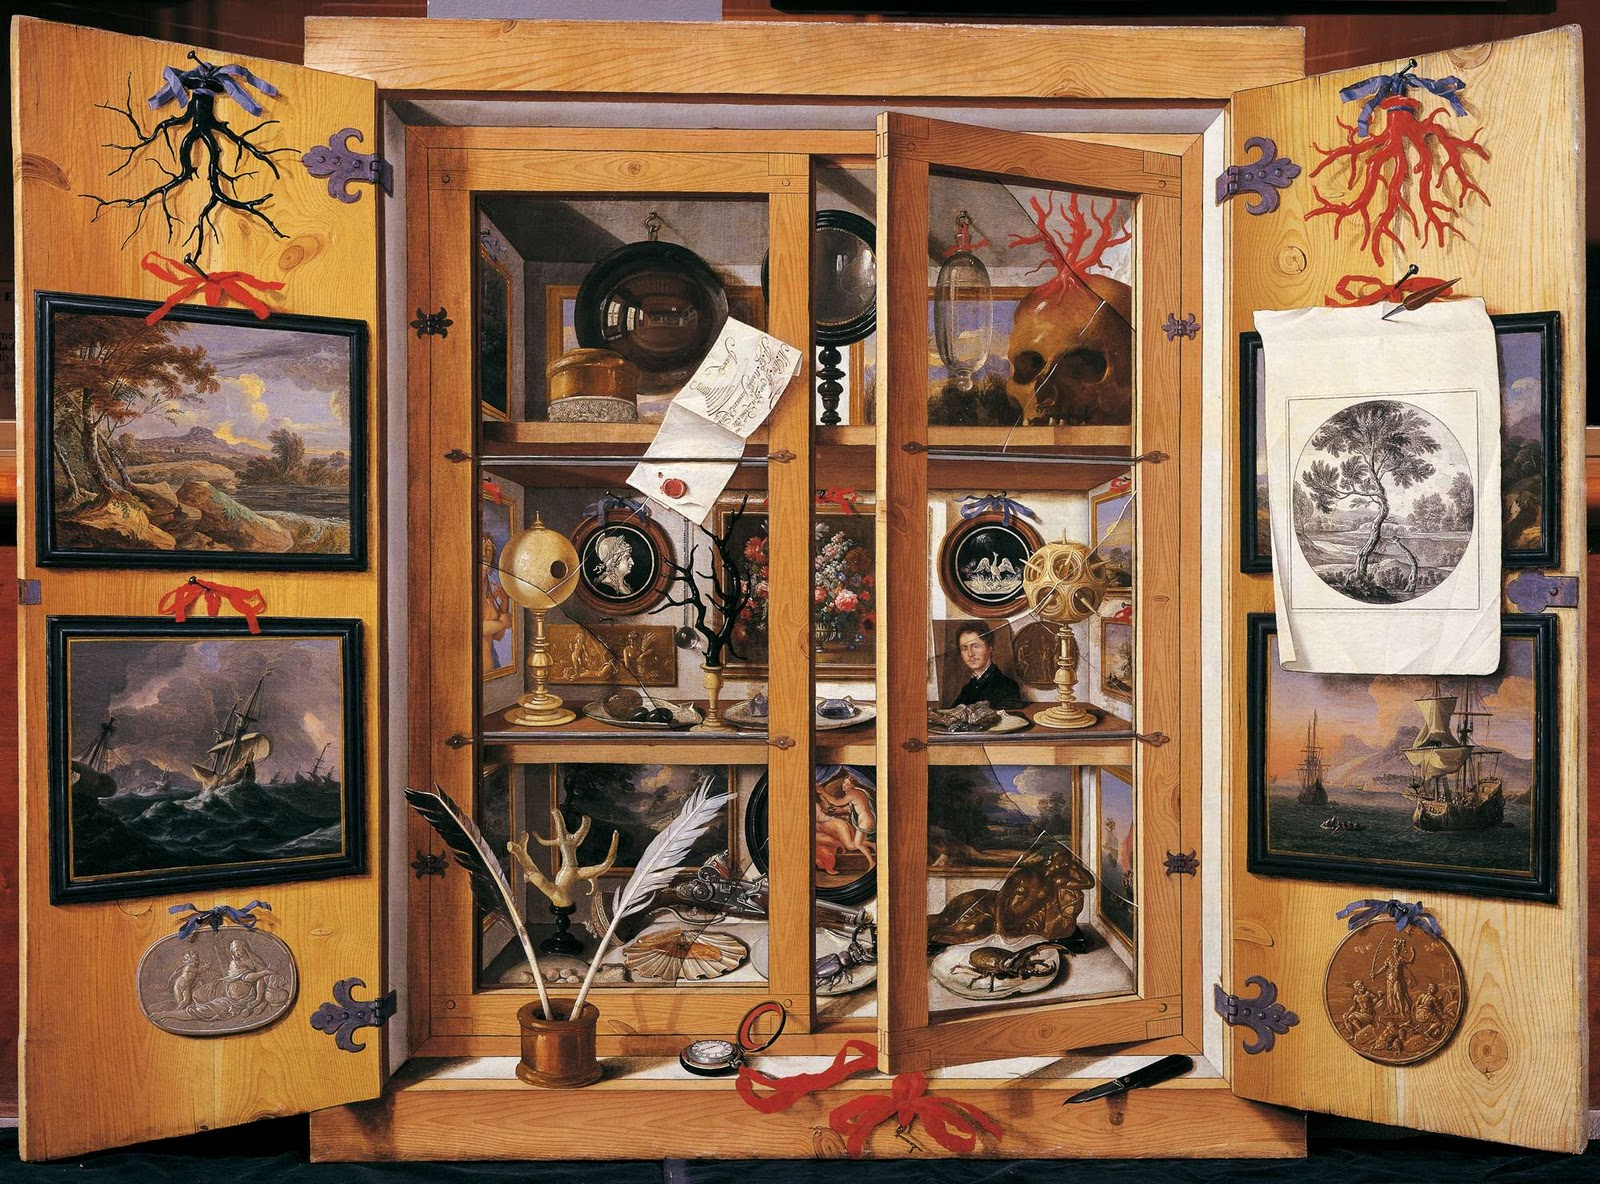 andrea-domenico-remps-a-cabinet-of-curiosity-1690s.jpg